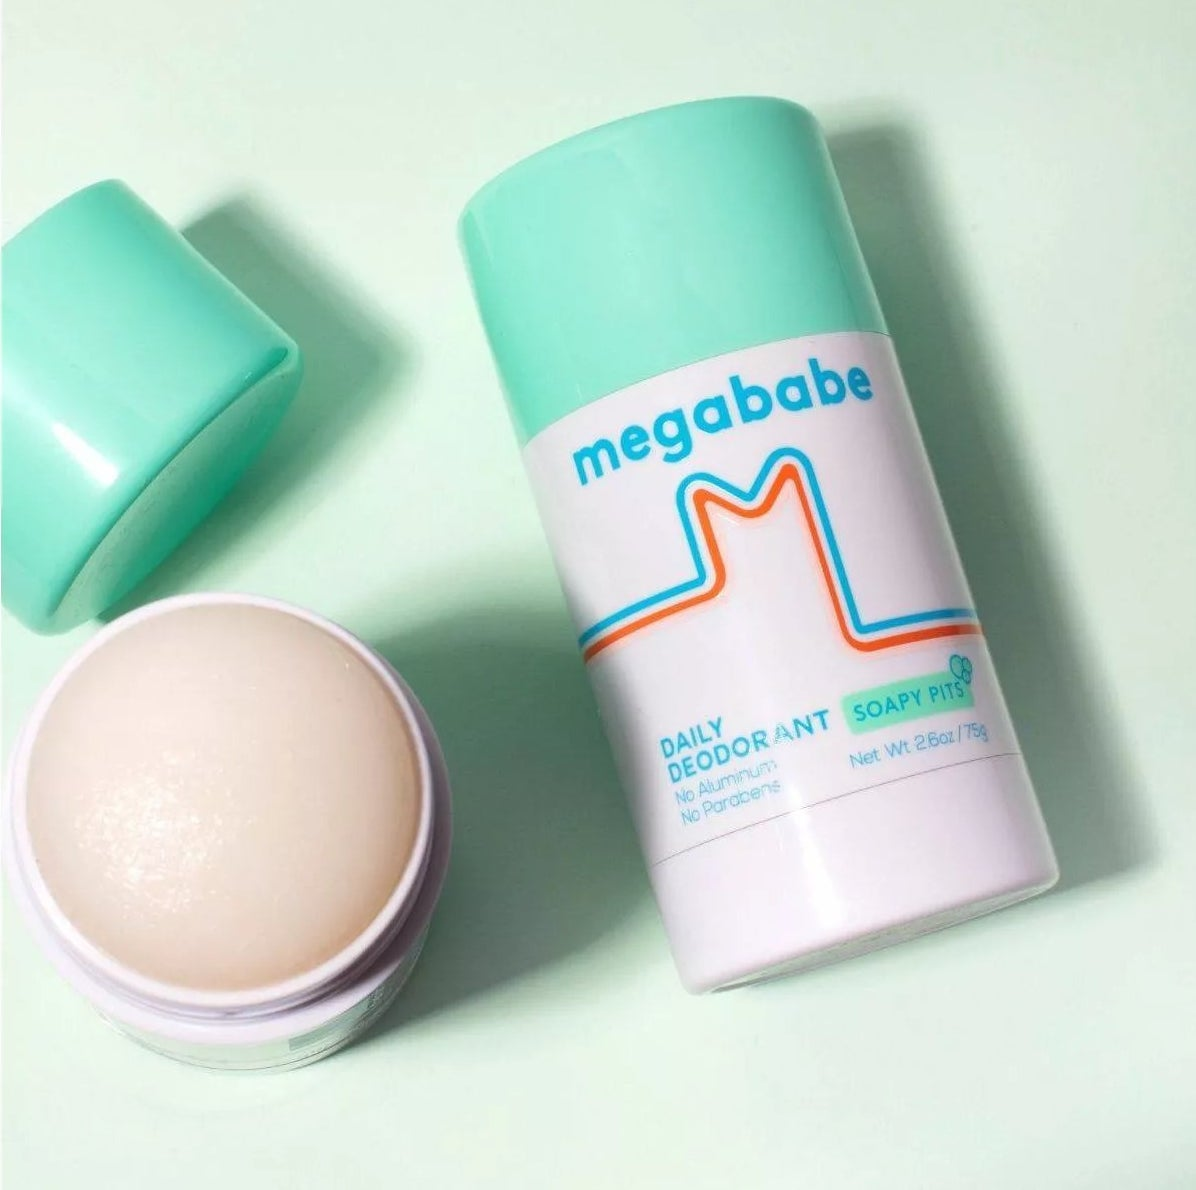 The round deodorant stick with a green cap